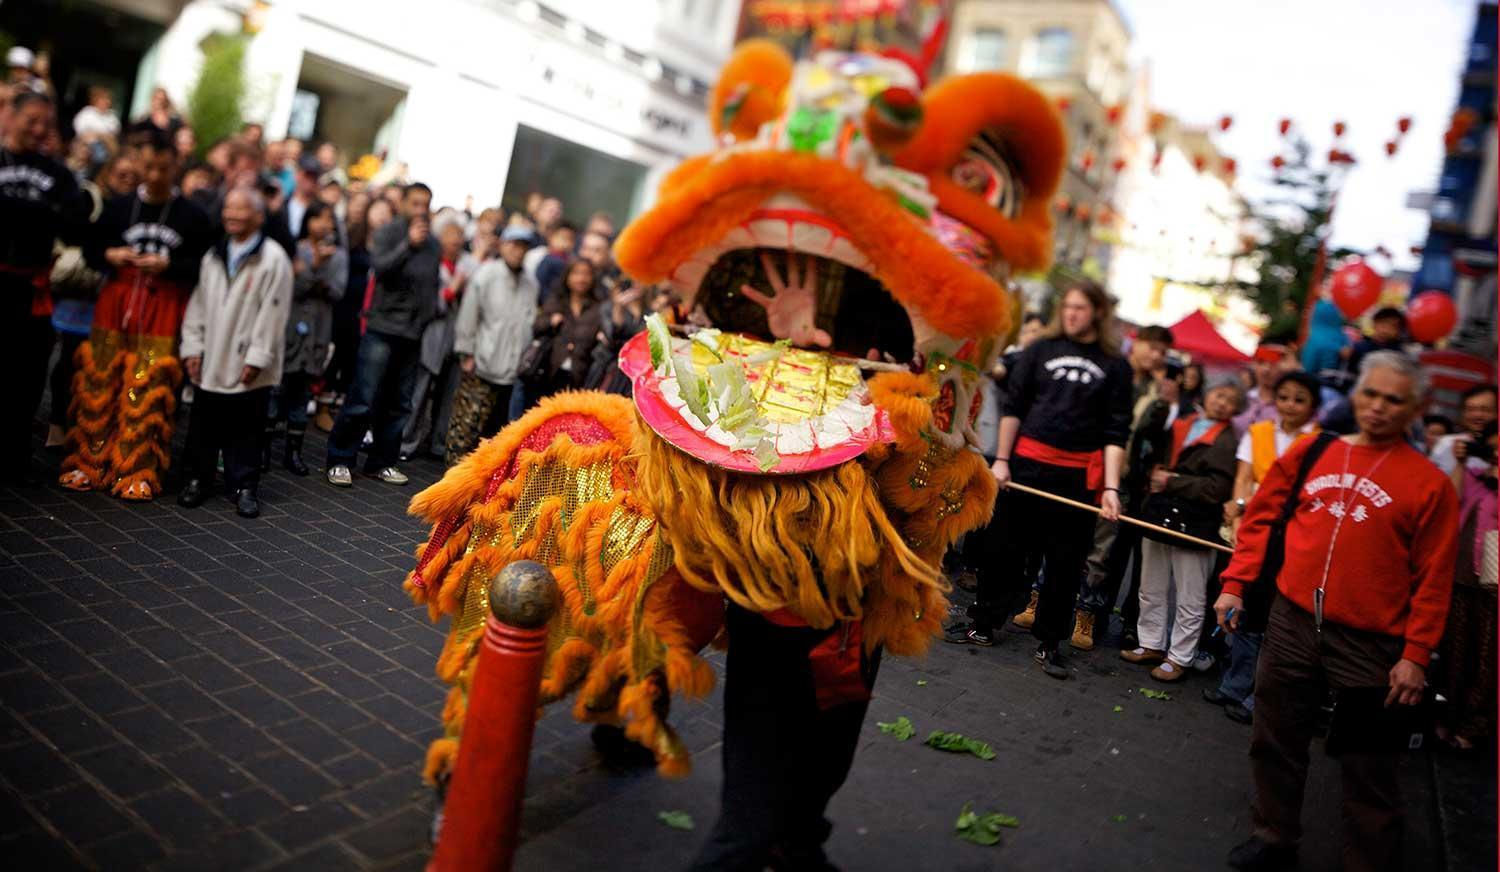 moon-festival-chinatown-dragon.jpg